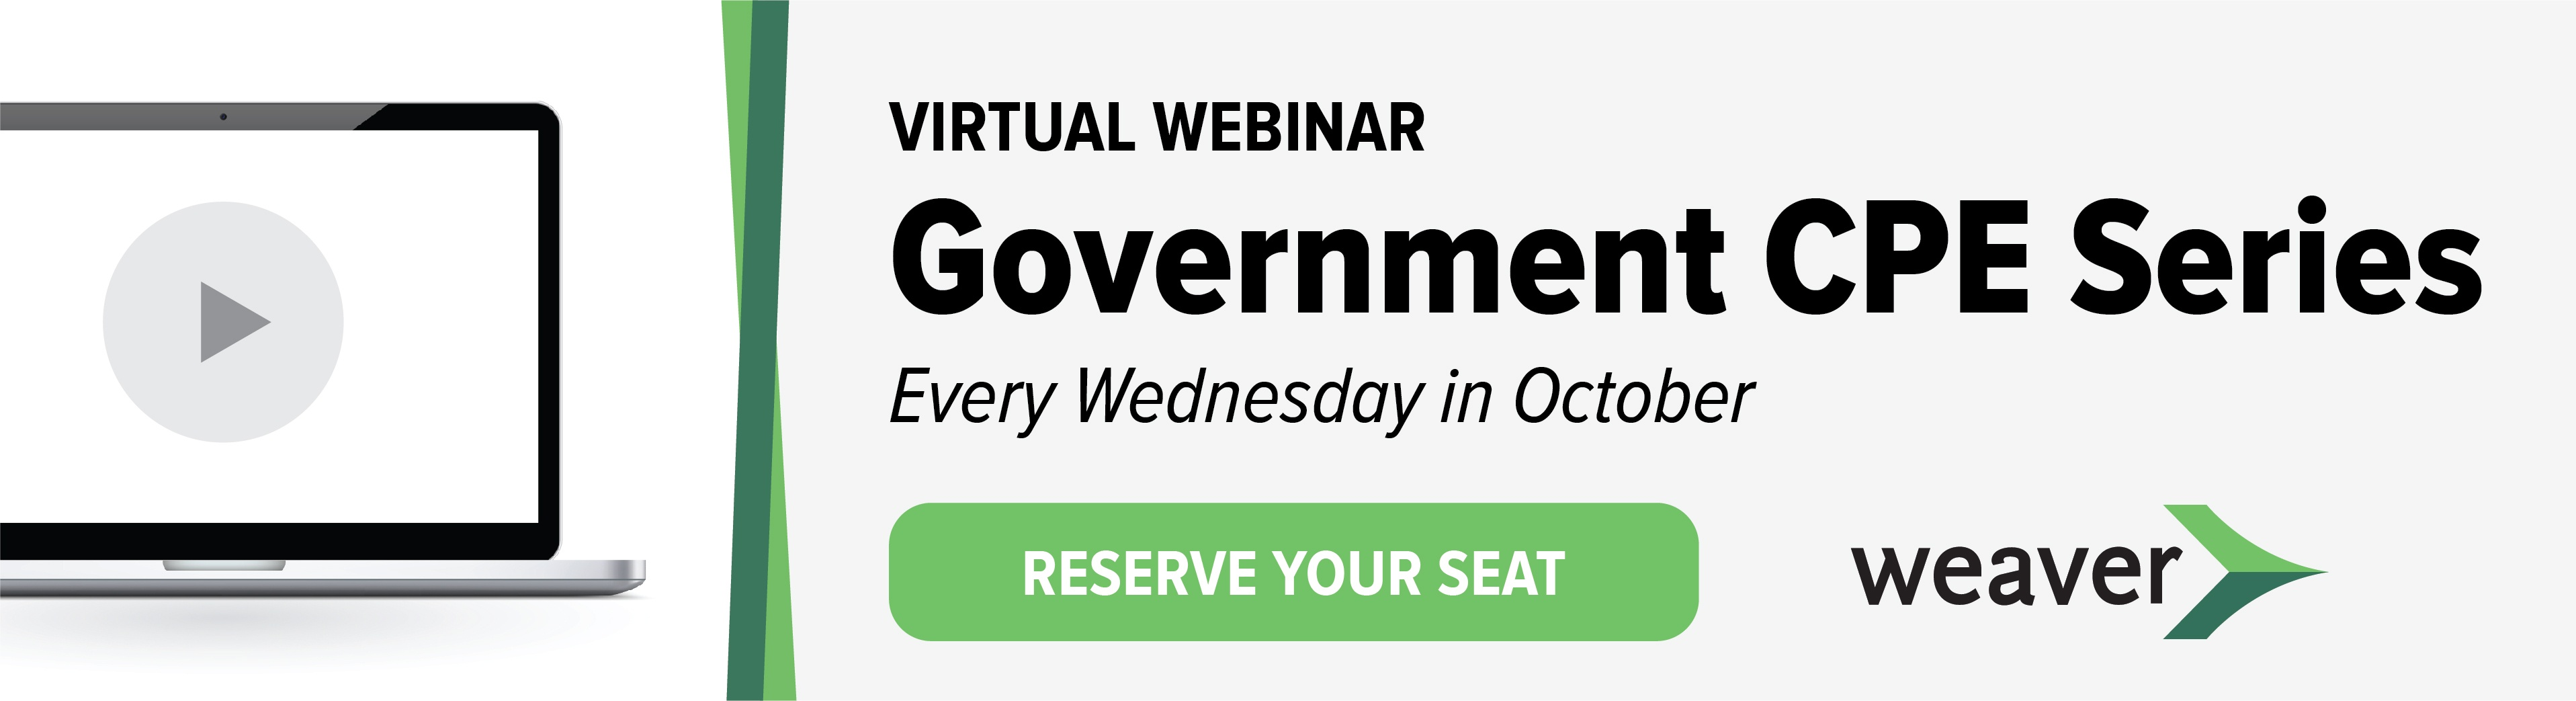 Click here to register for Weaver Wednesdays in October | 2020 Government CPE Series